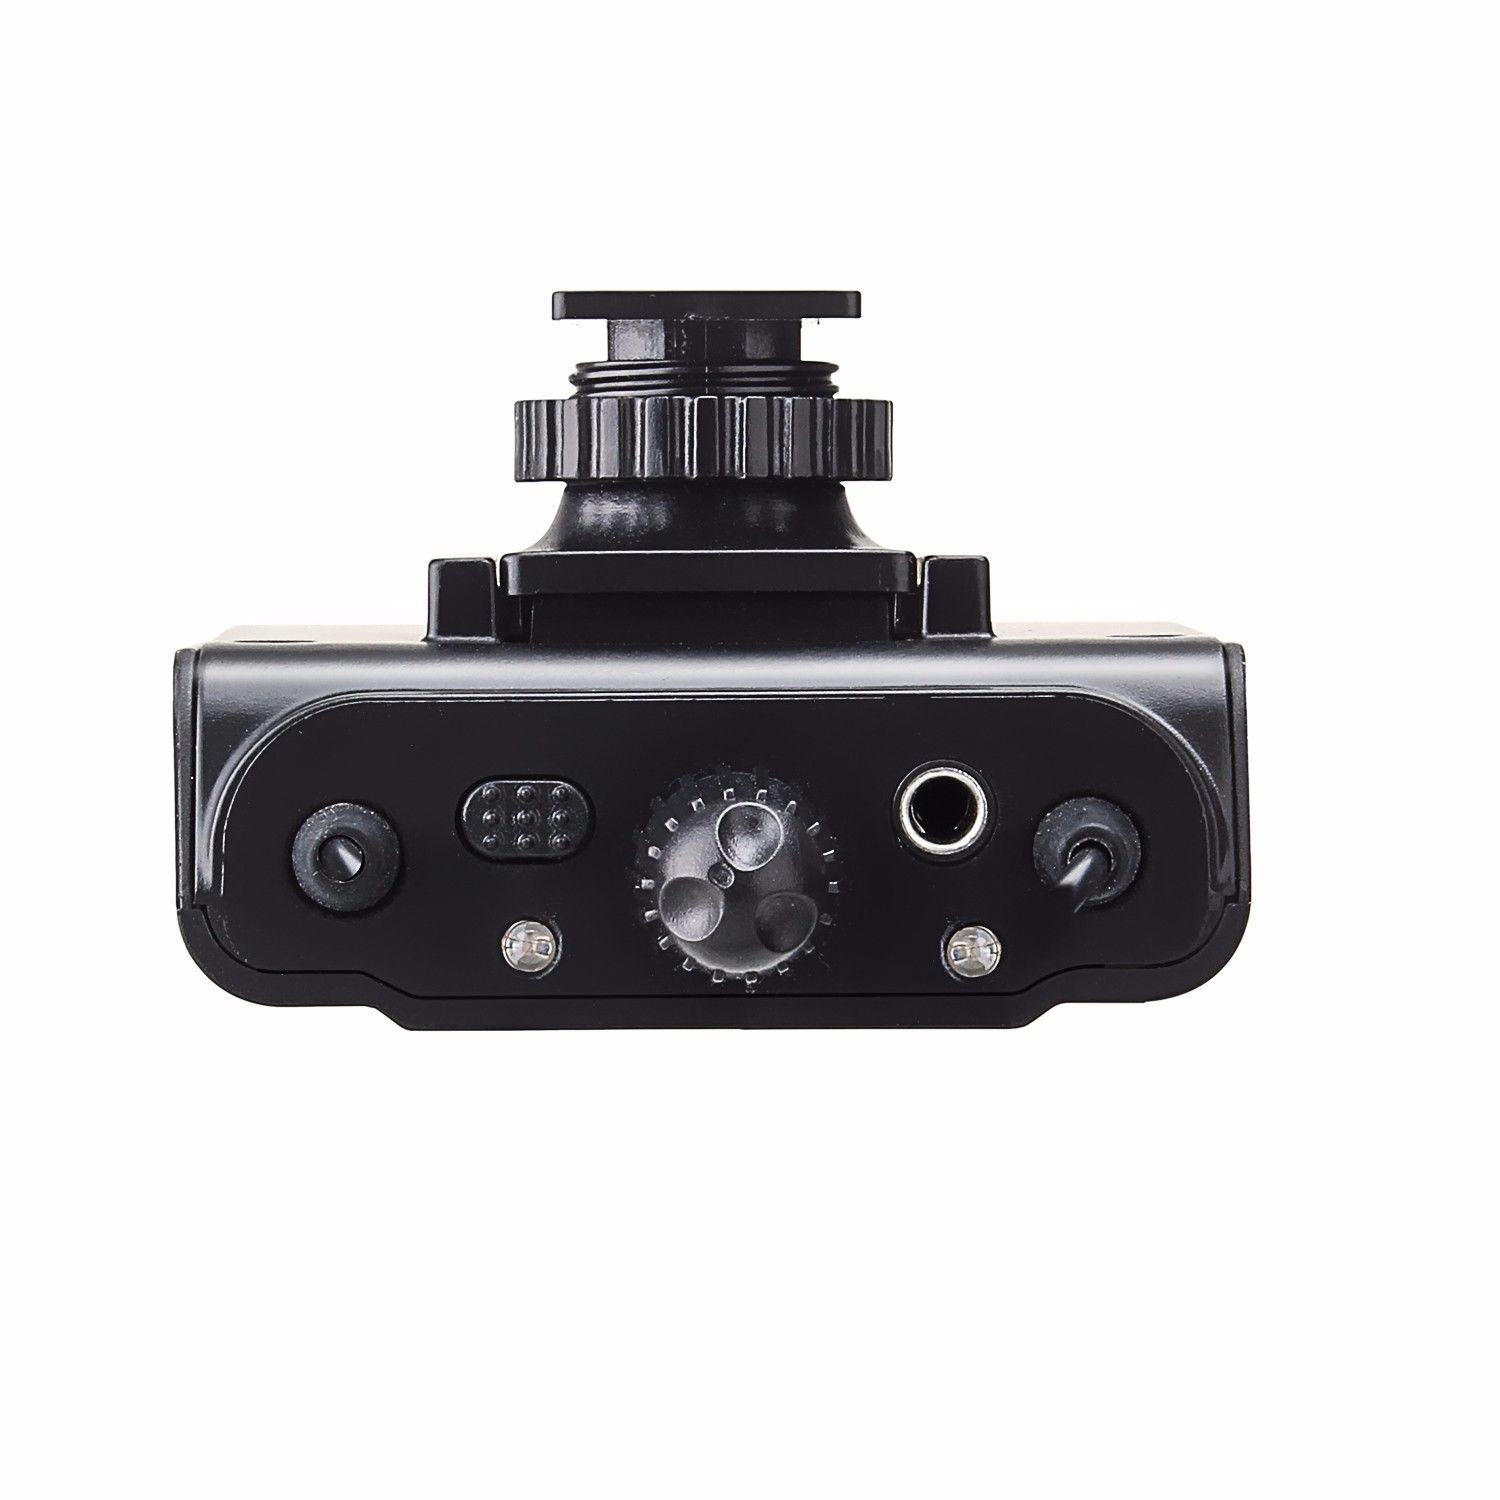 Acemic DV-100 Transmitter Receiver Wireless Mic Microphone for DSLR Camera DV, Pro Audio System Shooting Interview Recording